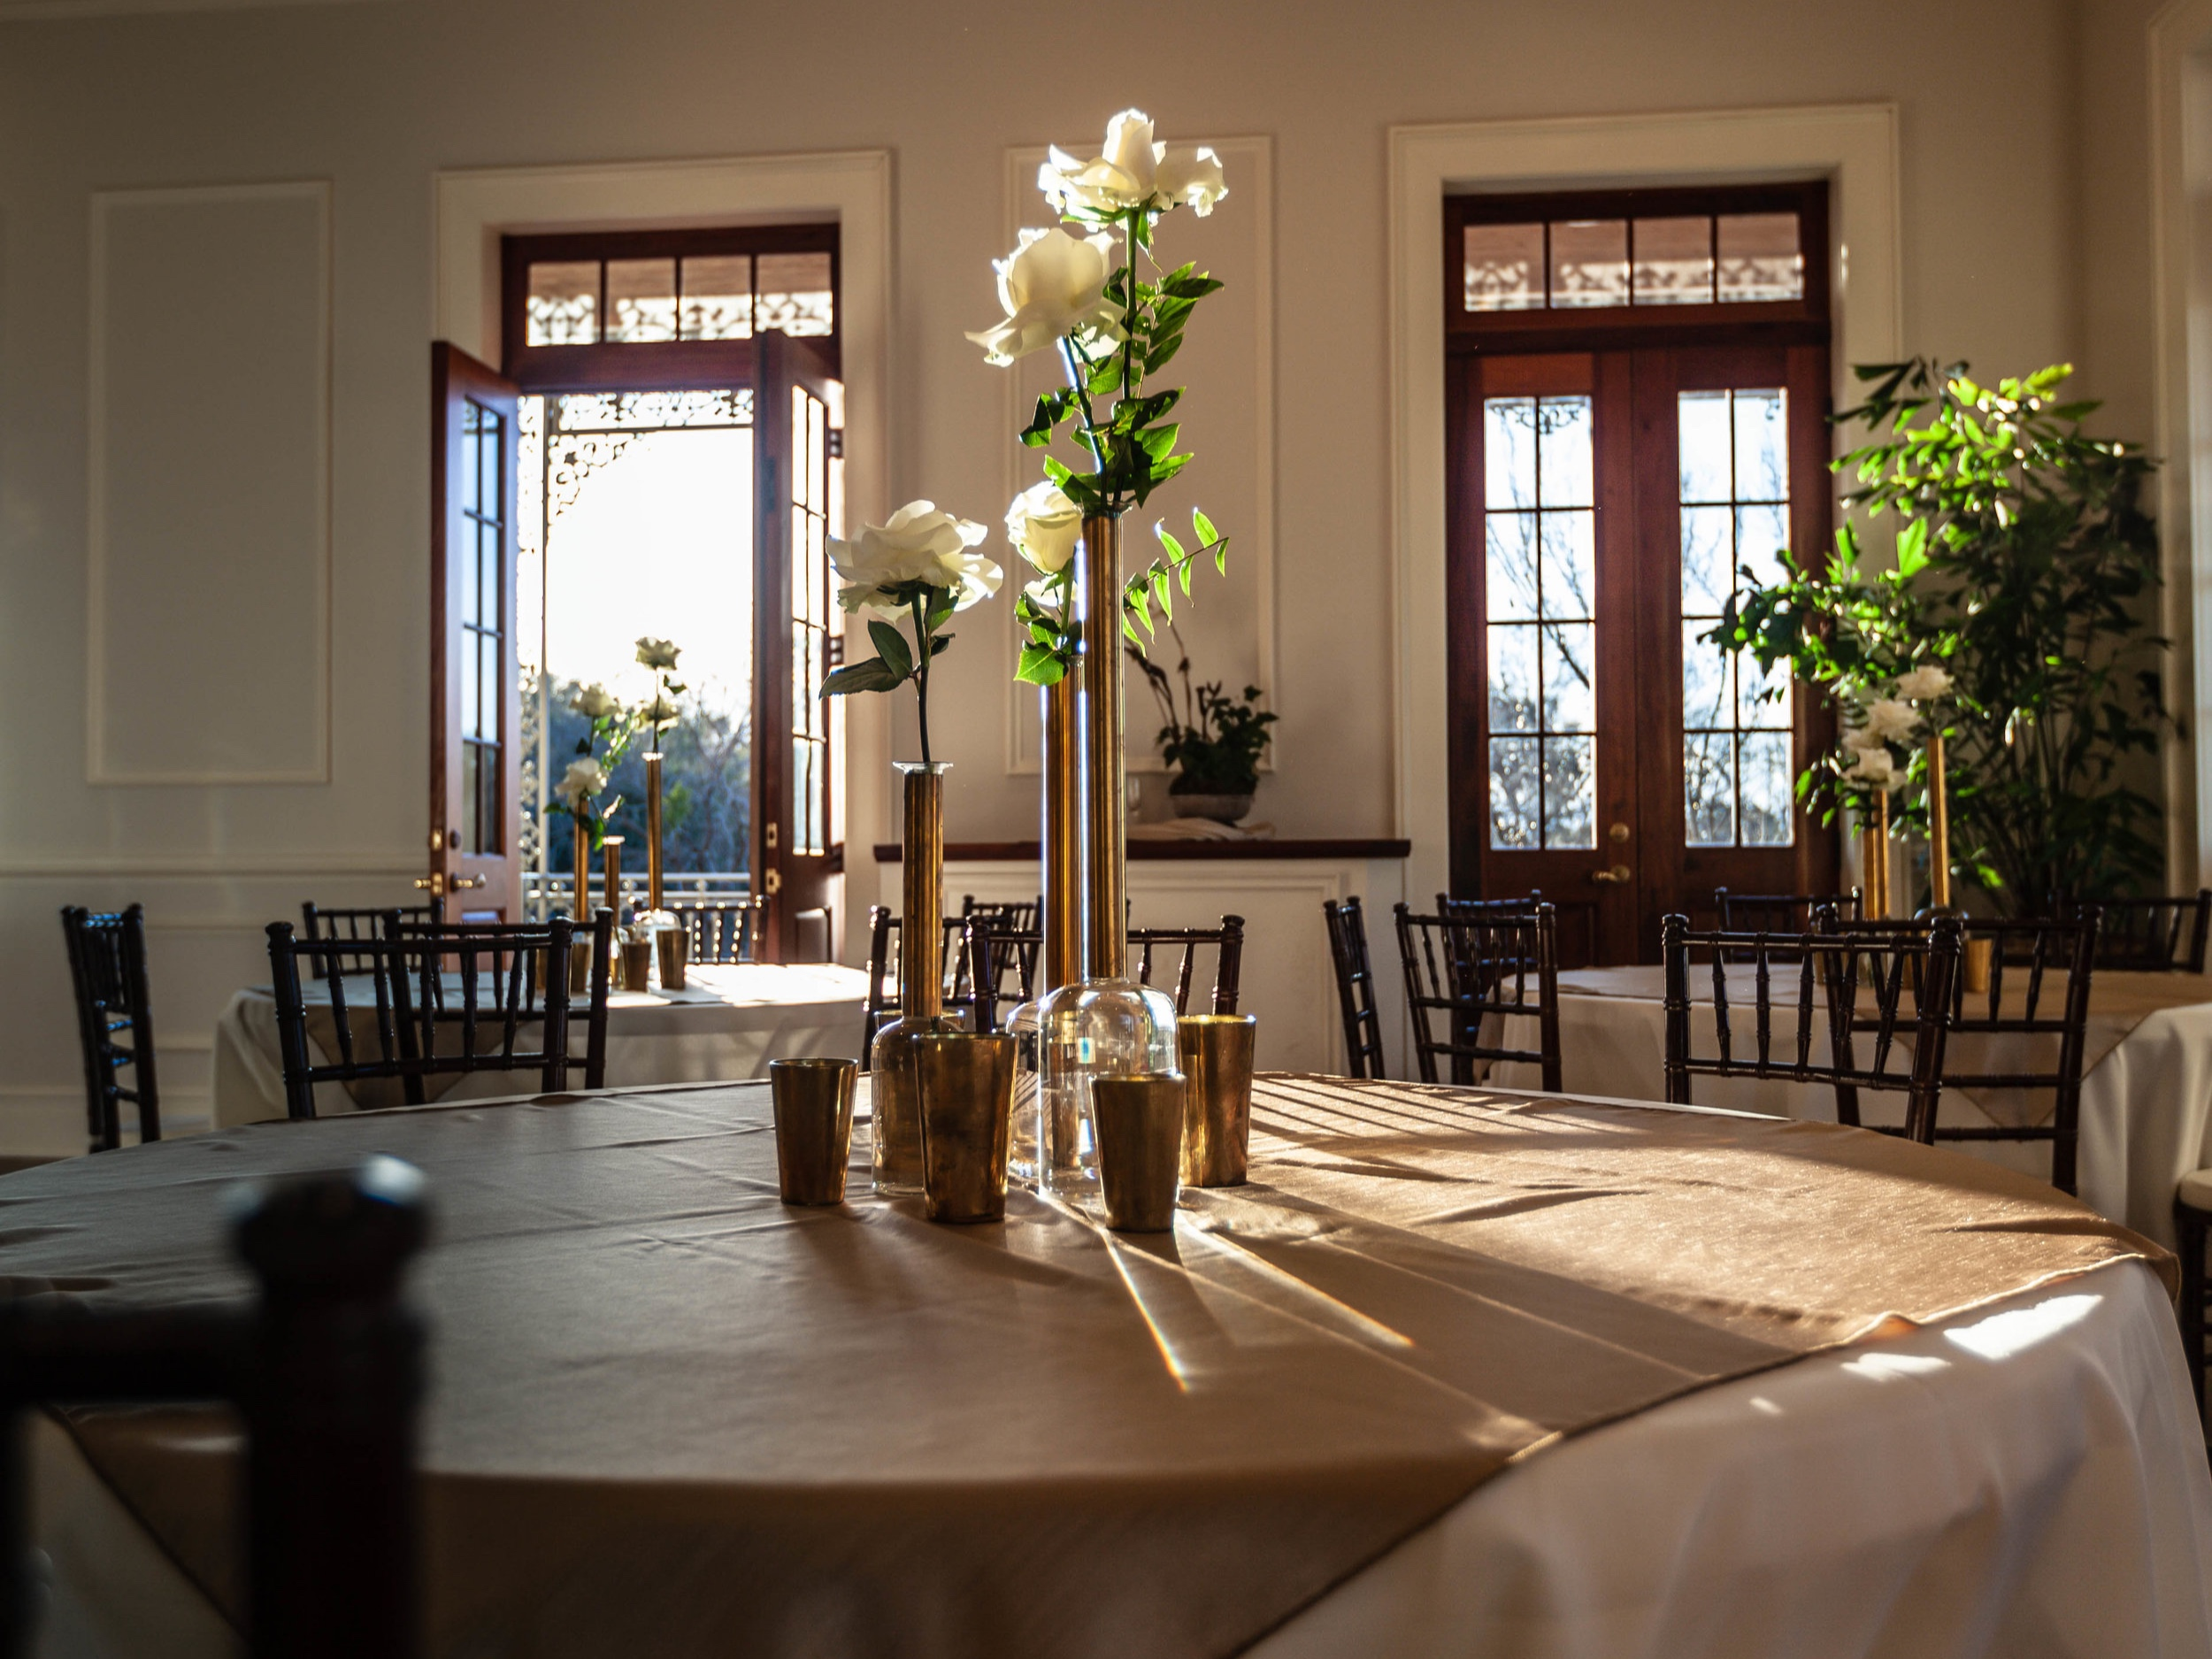 FLOWERS AND VASES FROM  WILDFLOWERS FAIRHOPE  AND ROOM AND TABLES STYLED BY CINDY BROWN WITH  ORGANIZE ETC .